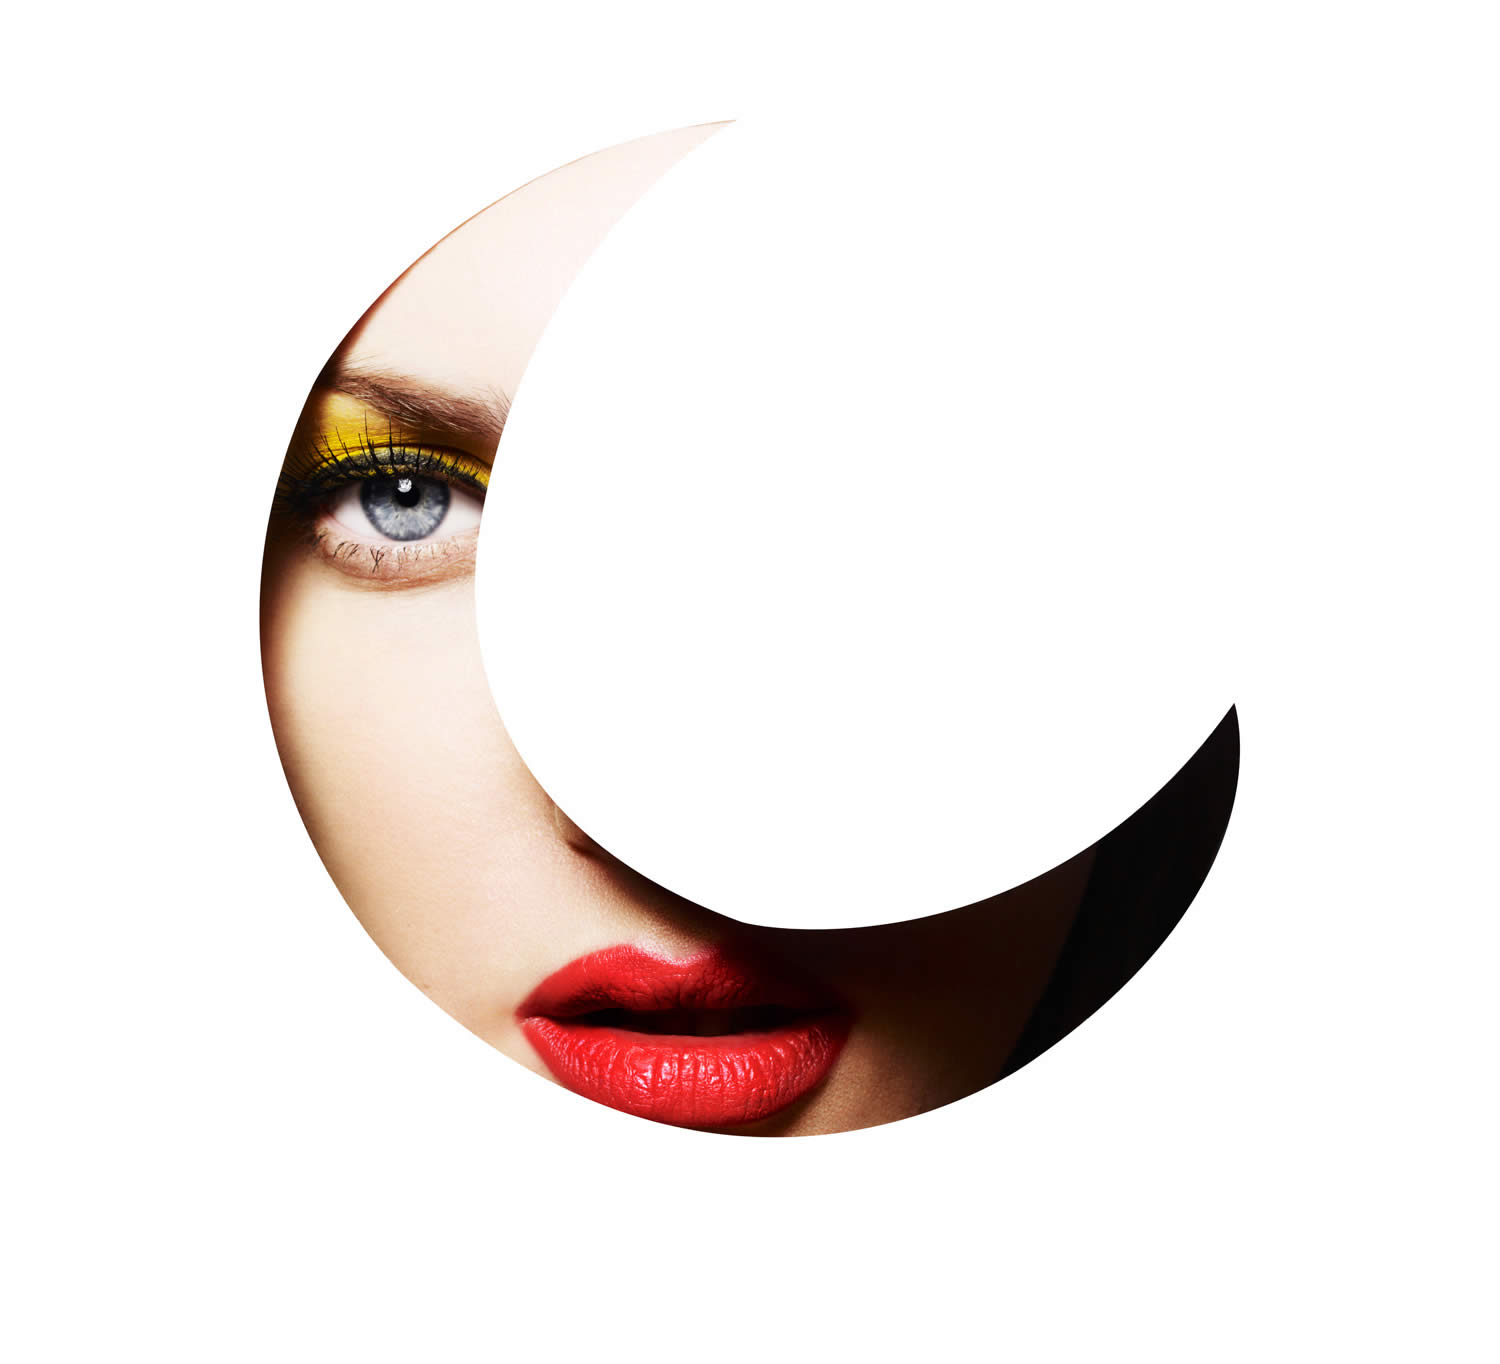 moon shape cutout photo by rankin